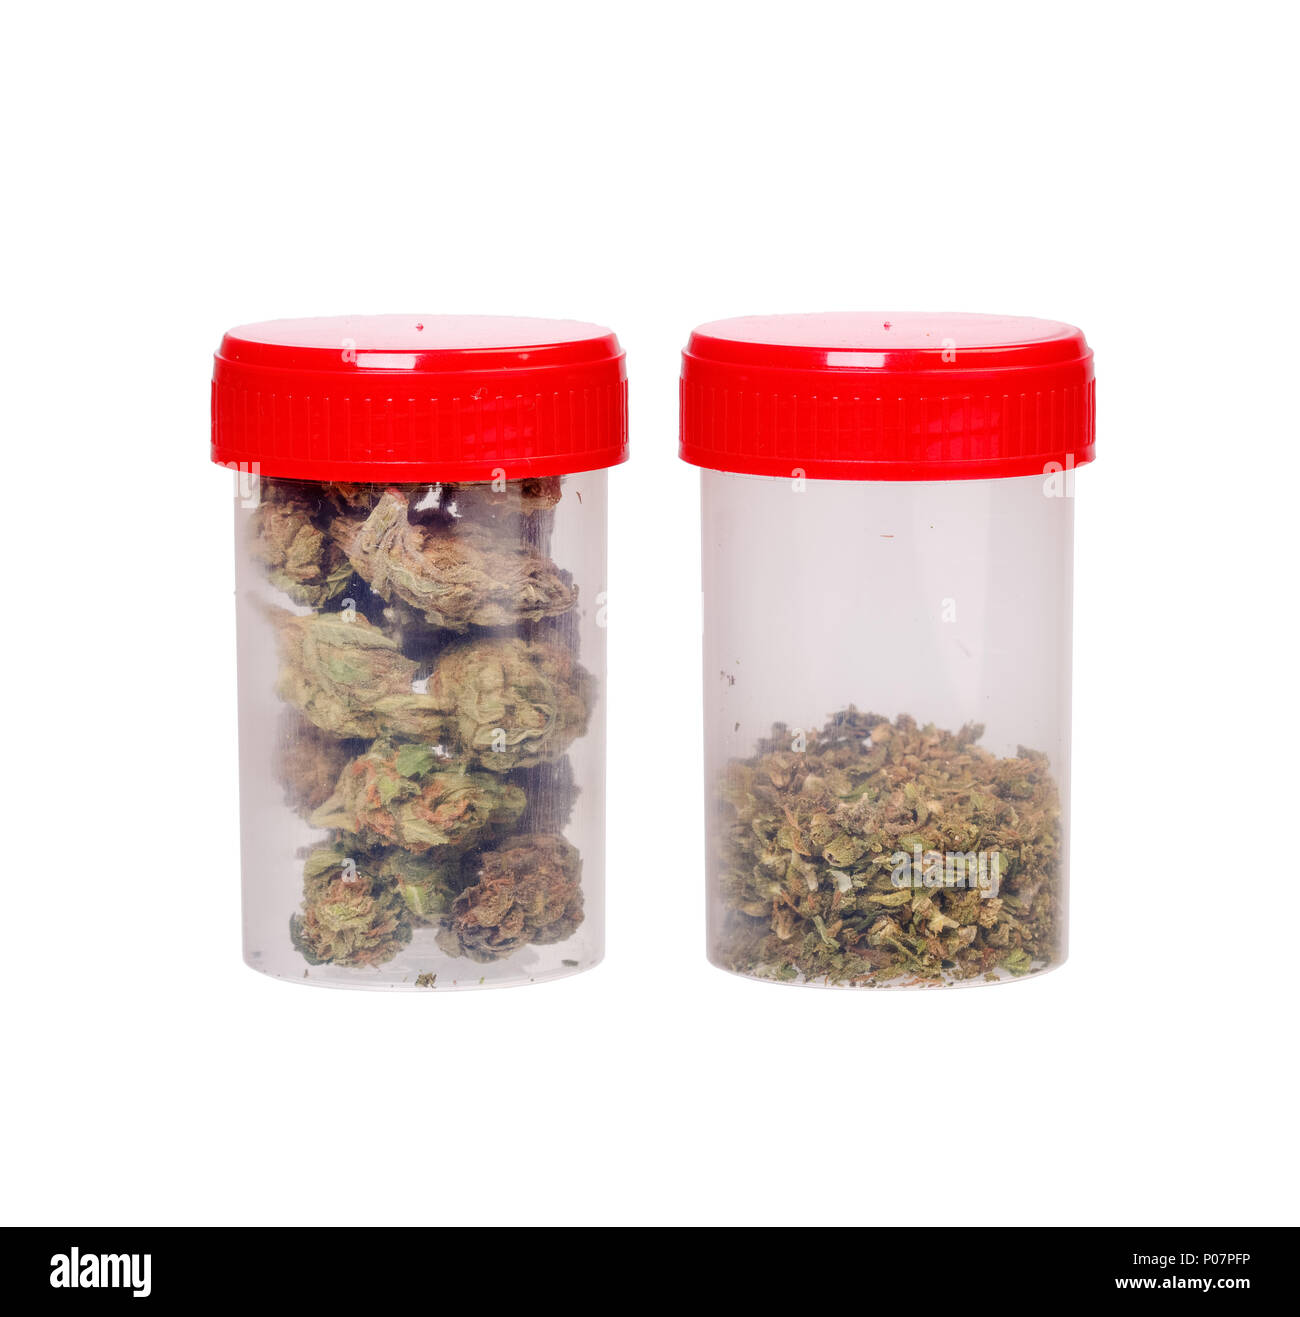 Two types of medical cannabis - Stock Image